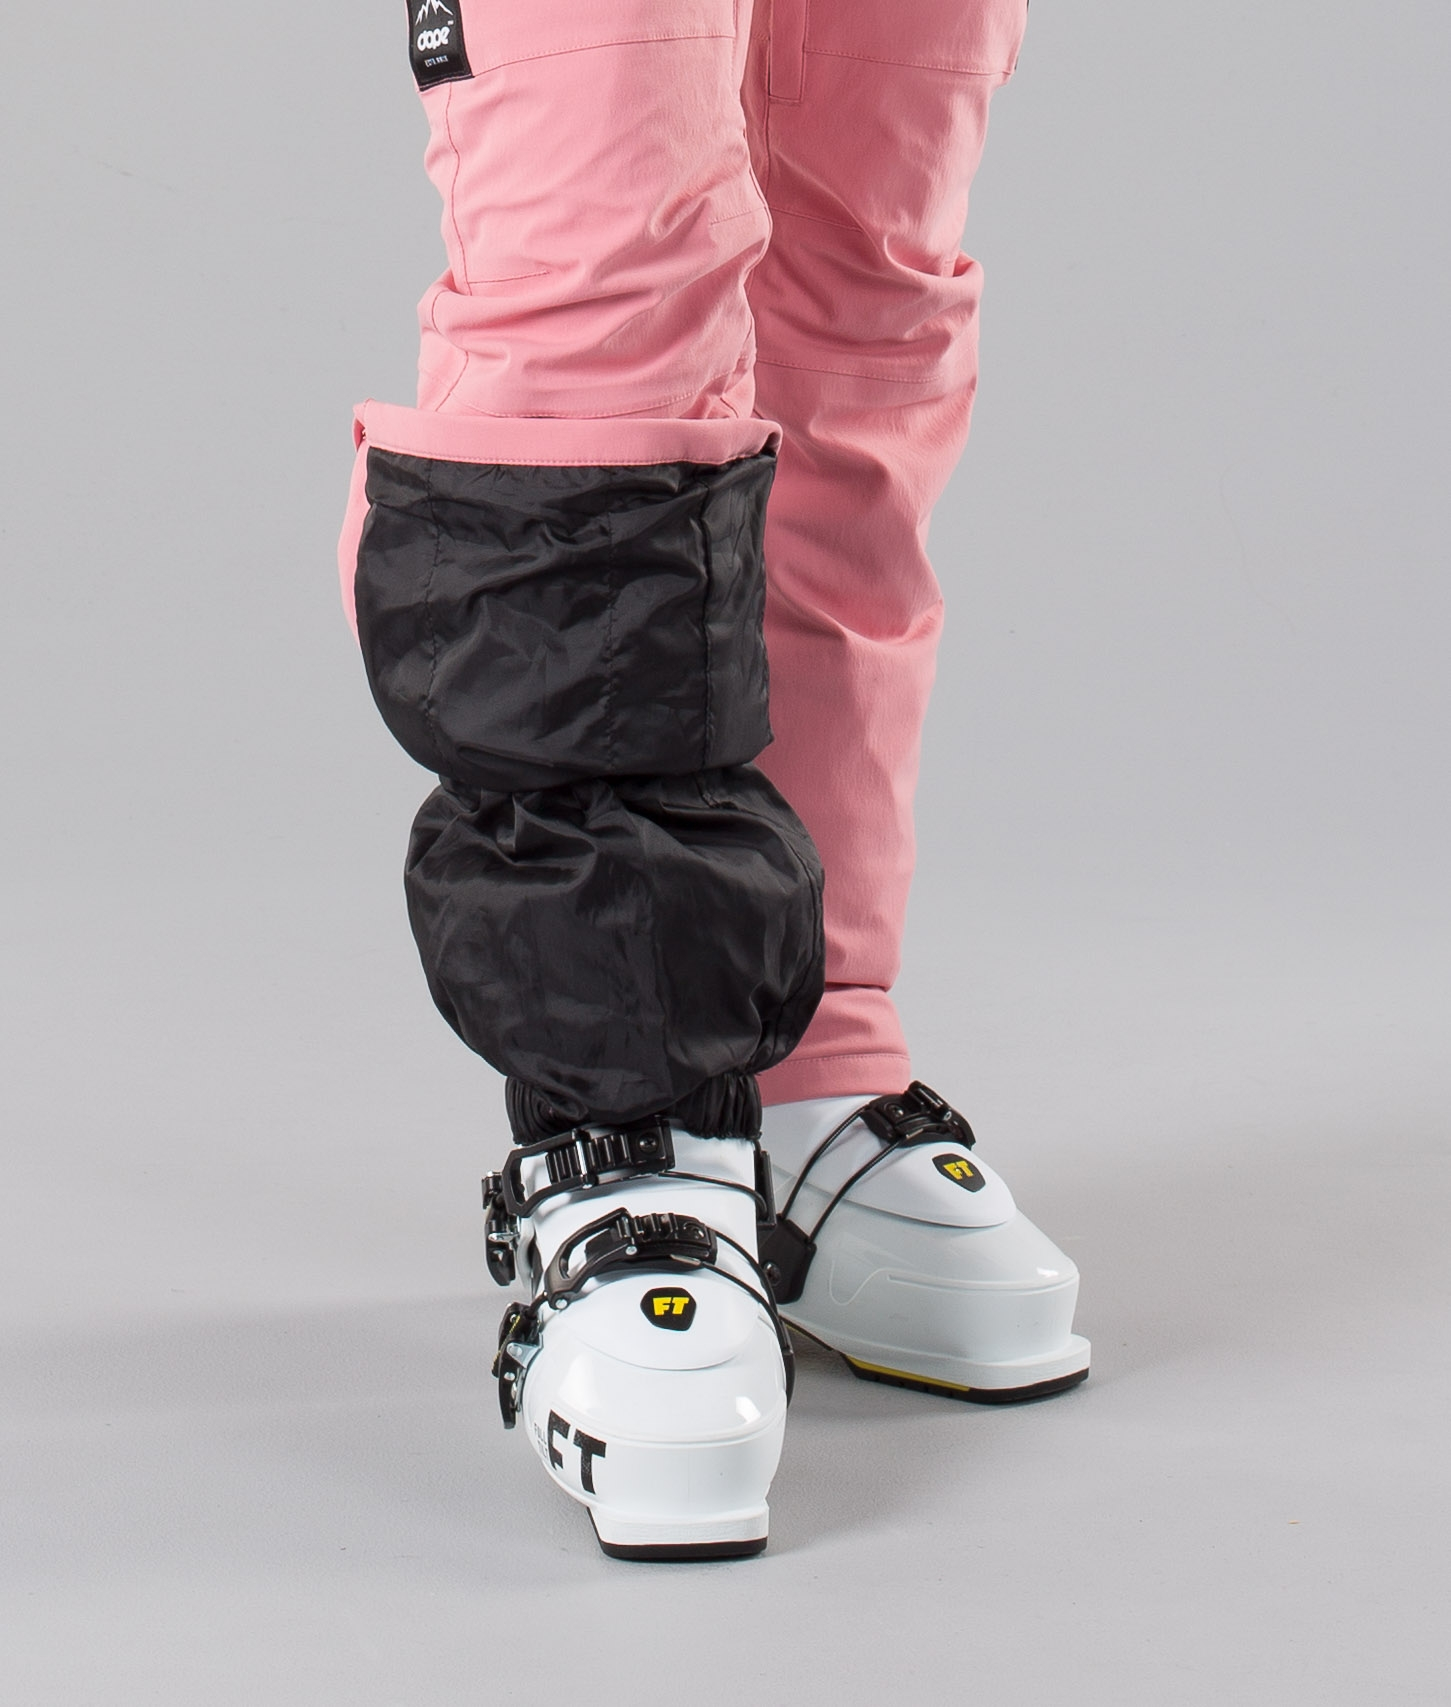 2f9009d6e5 Dope con ski pants pink jpg 1451x1707 Con motorcycle dope pants